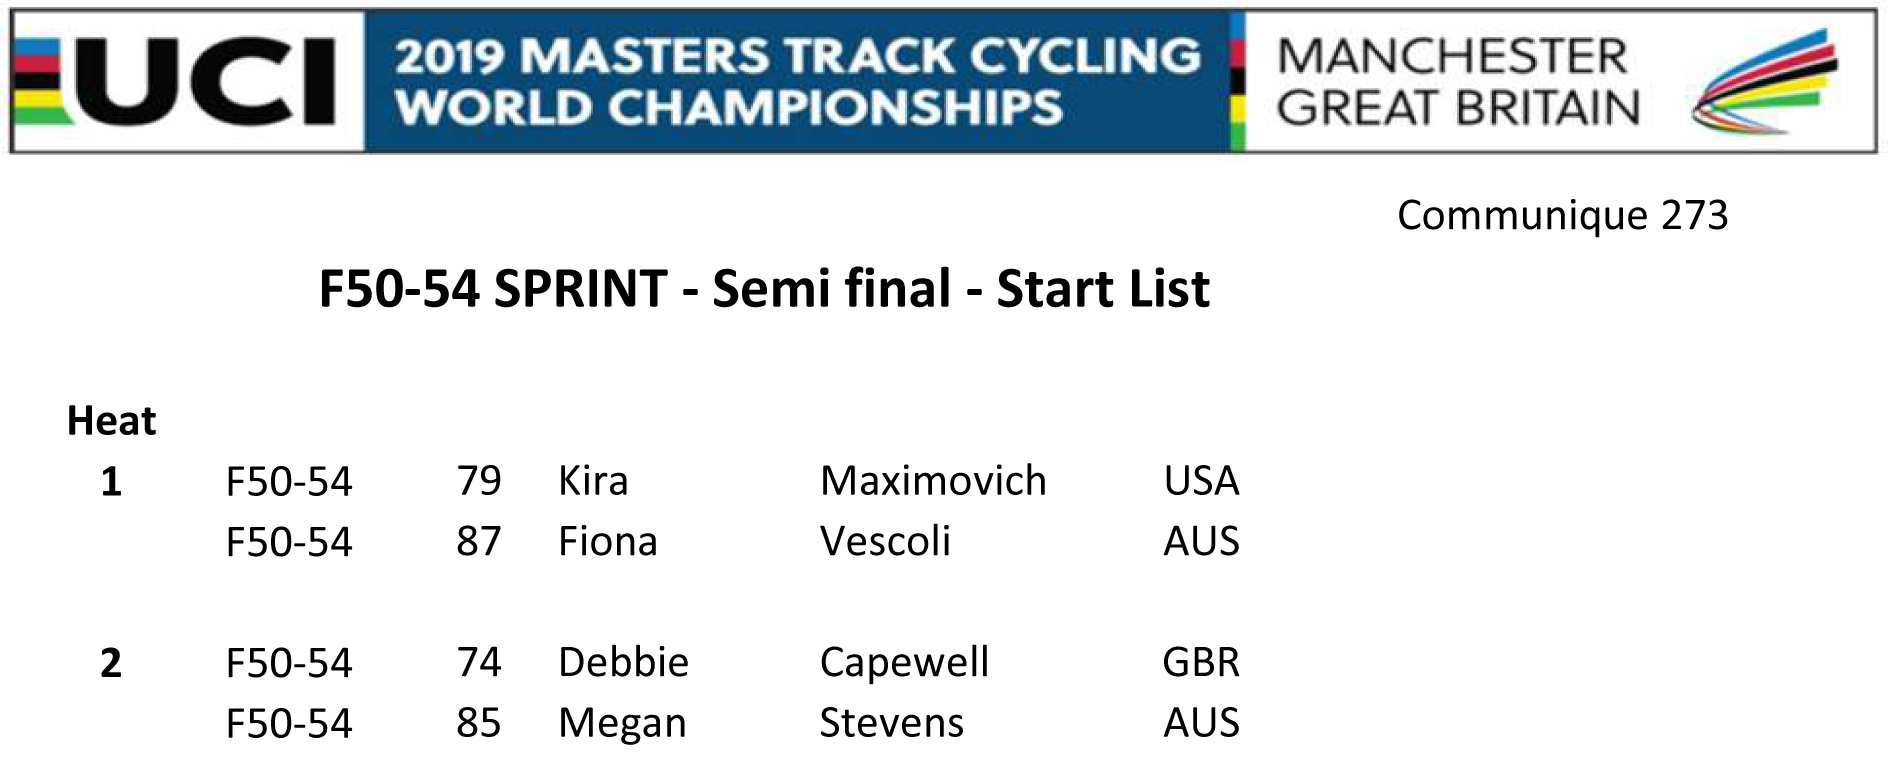 F5054 SPRINT SEMI FINAL START LIST